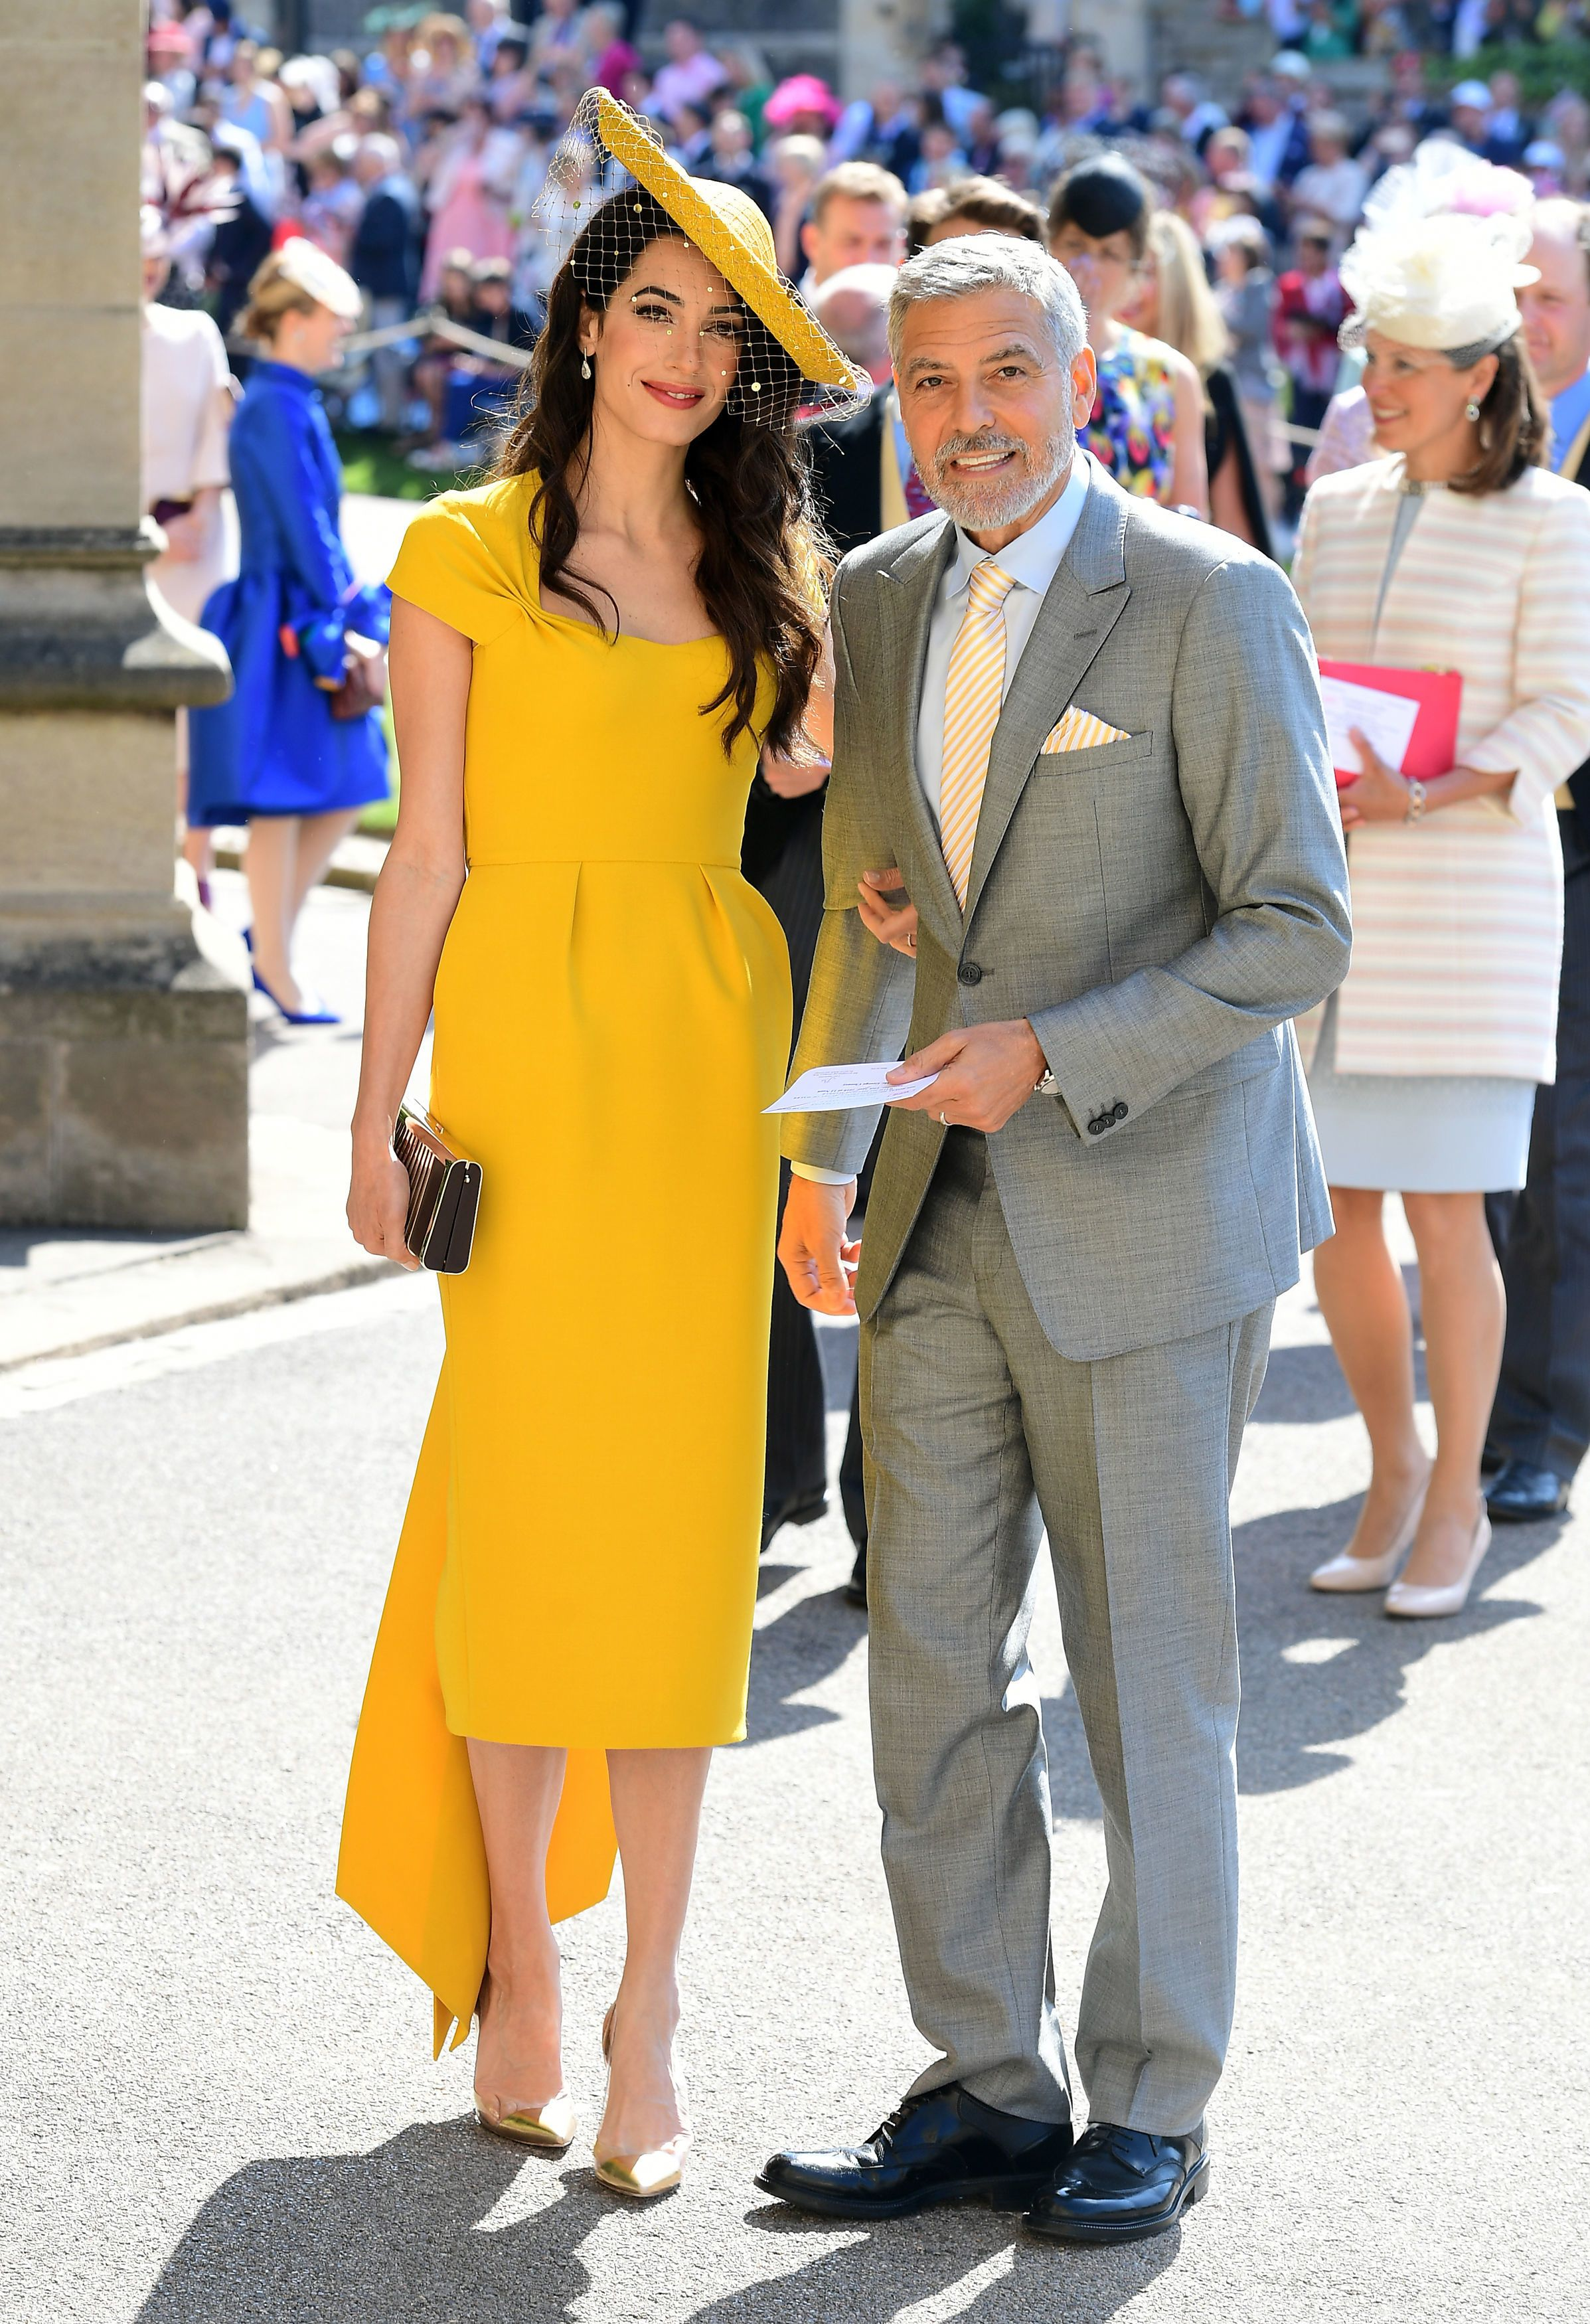 Royal Wedding Best Dressed Guests Prince Harry And Meghan Markle